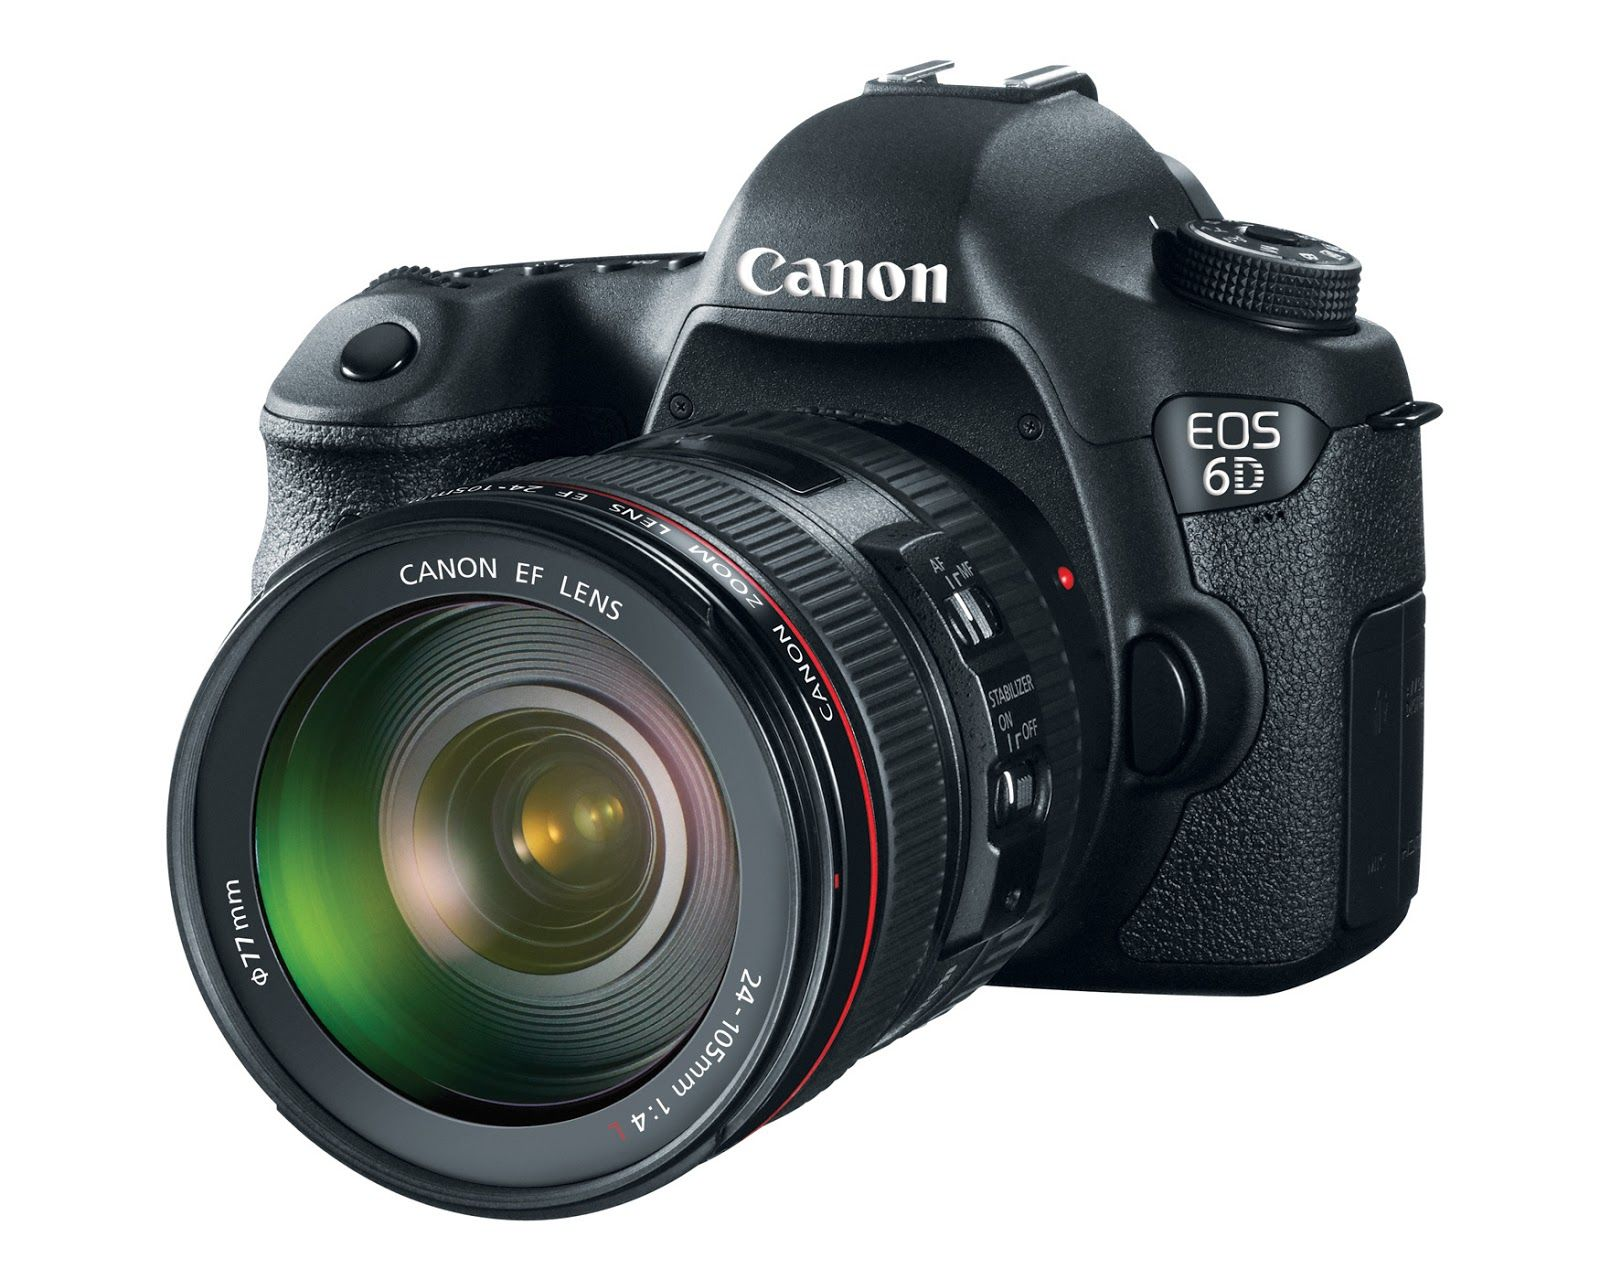 Canon 6D with EF 24-105mm F4 L IS USM